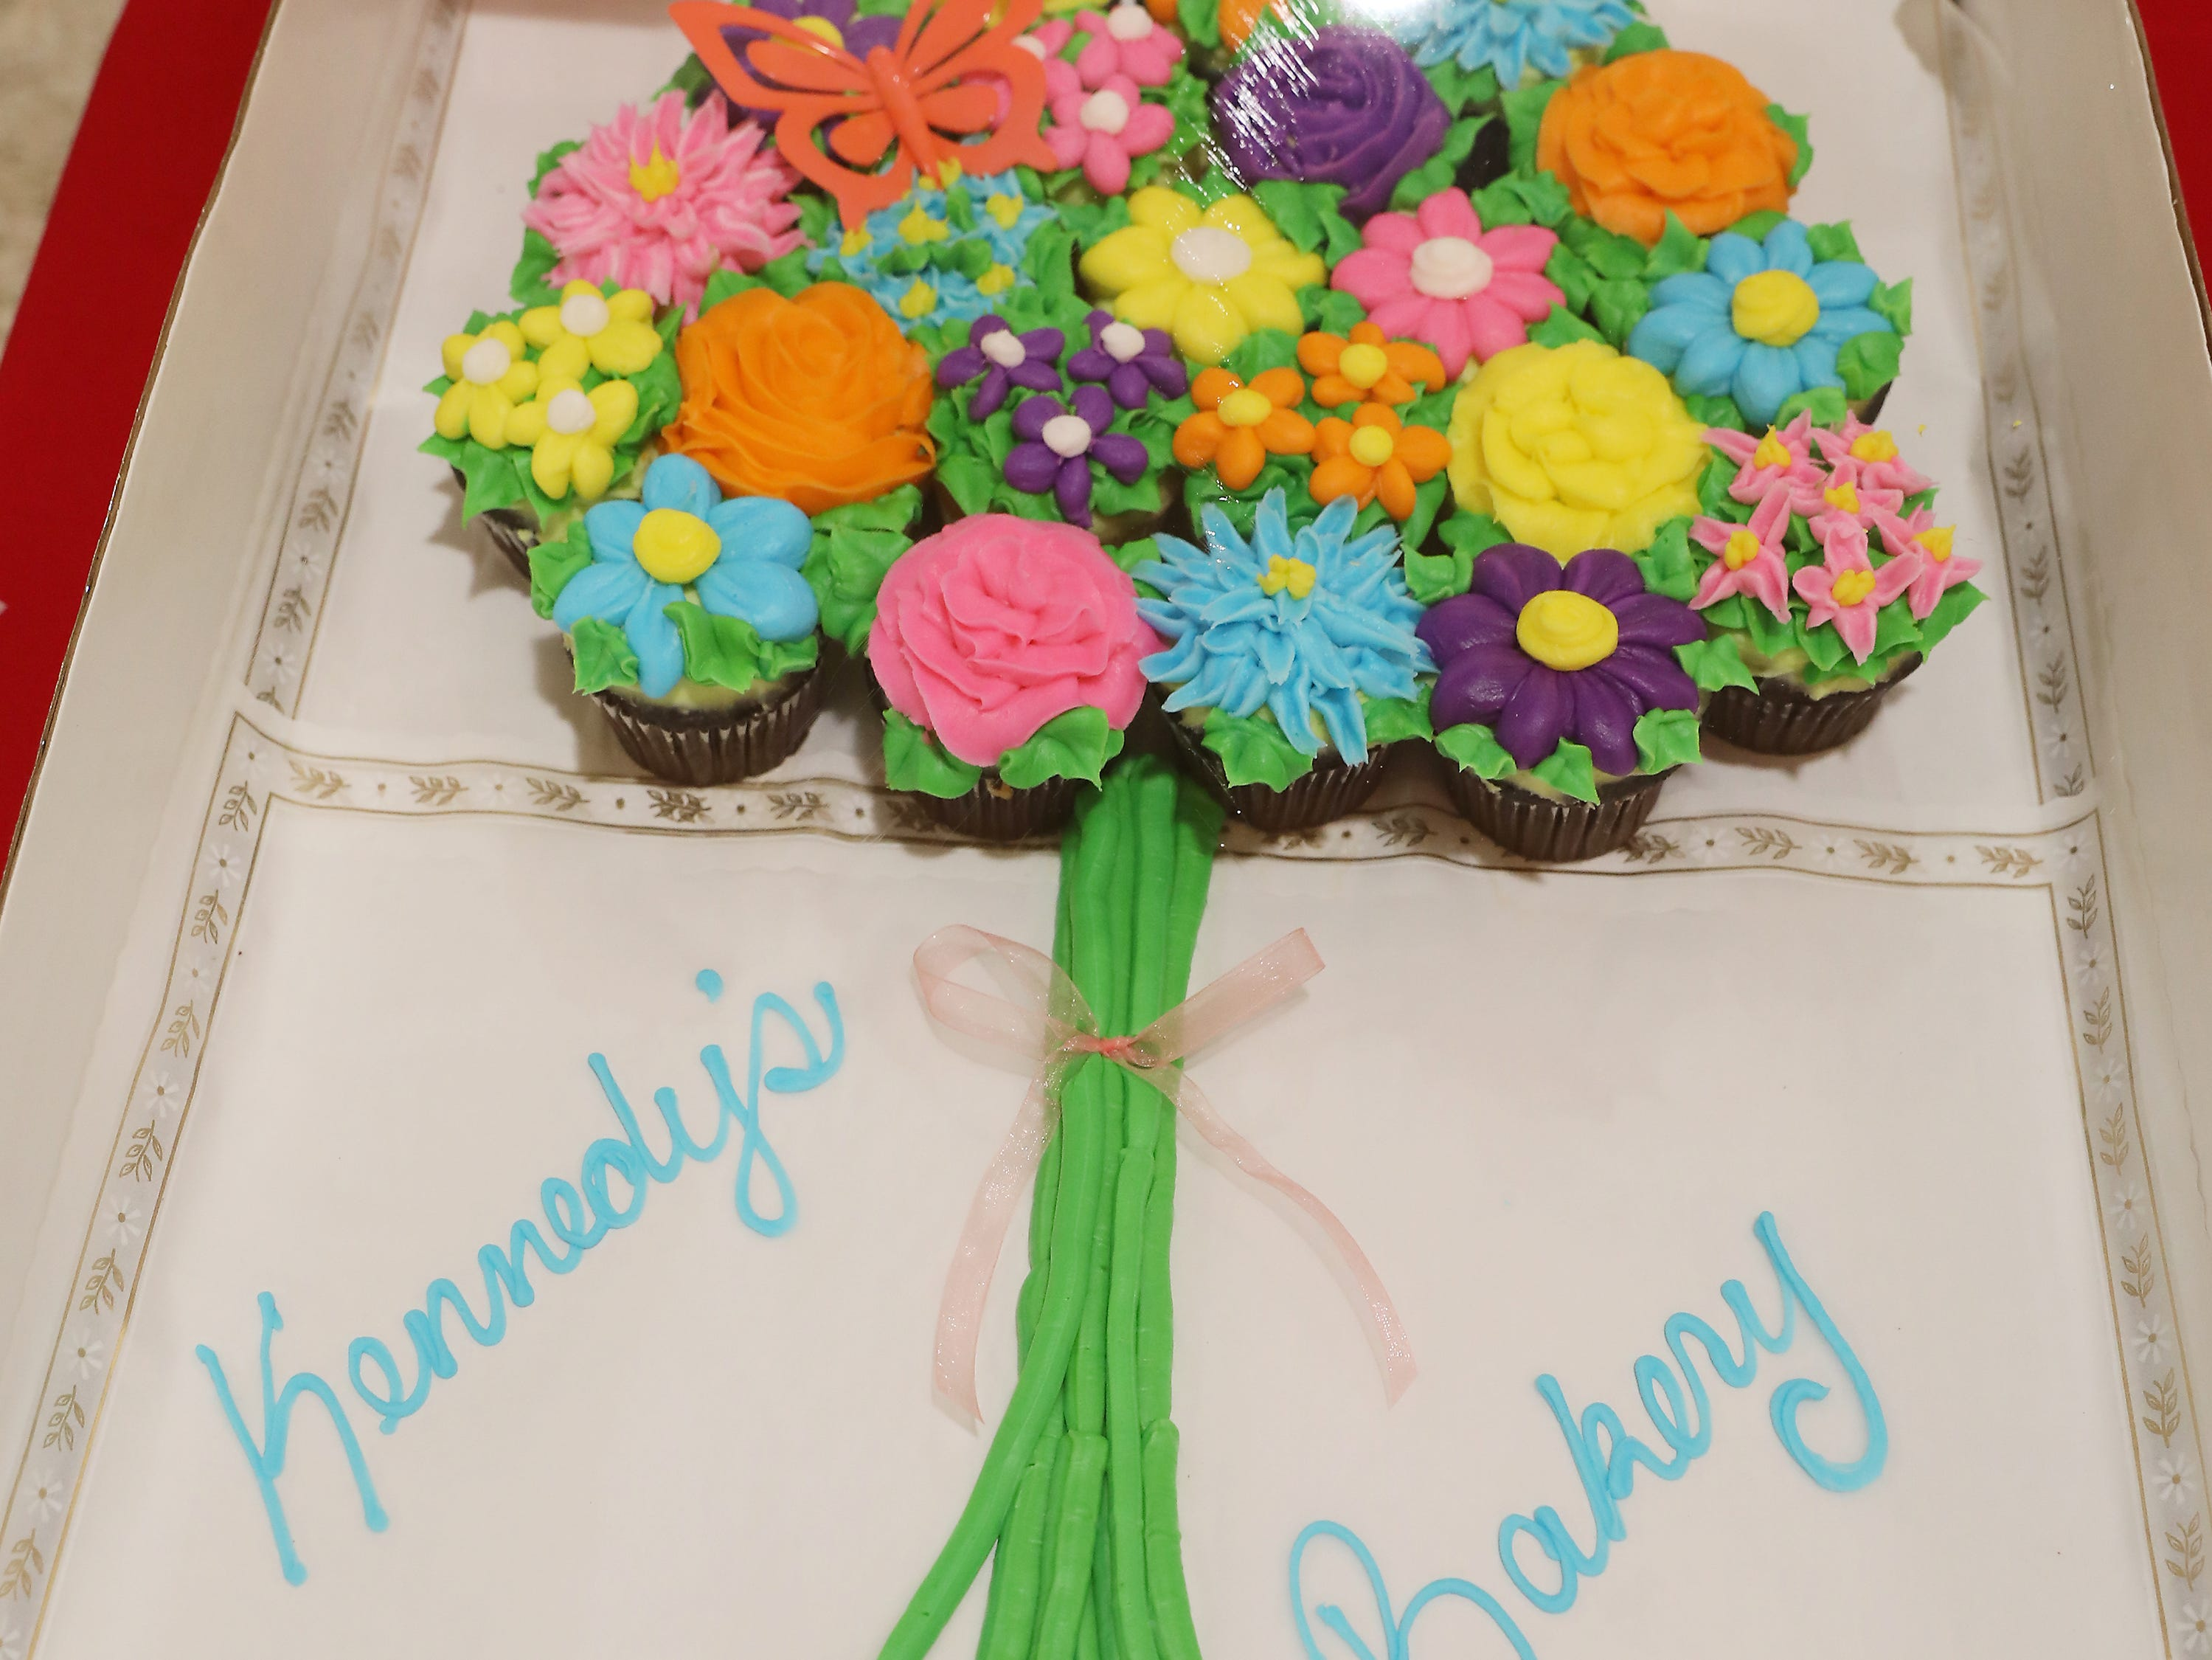 9:15 A.M. Friday cake 234 Kennedy's Bakery - $25 to Kennedy's